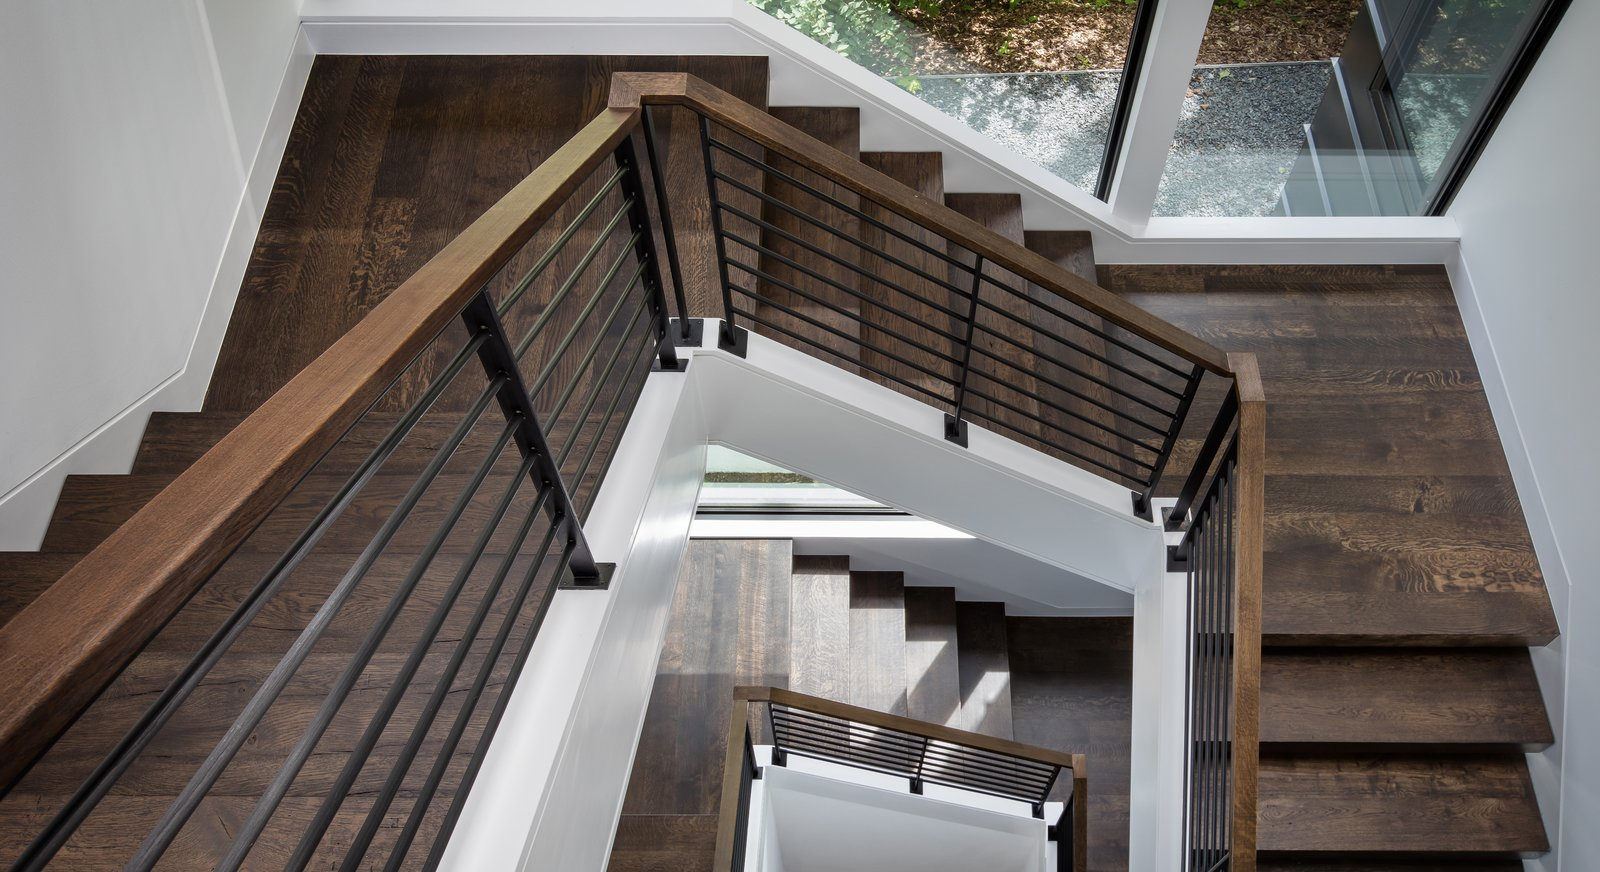 Staircase, Wood Tread, and Metal Railing  Calhoun Pavilions Residence by Peterssen/Keller Architecture